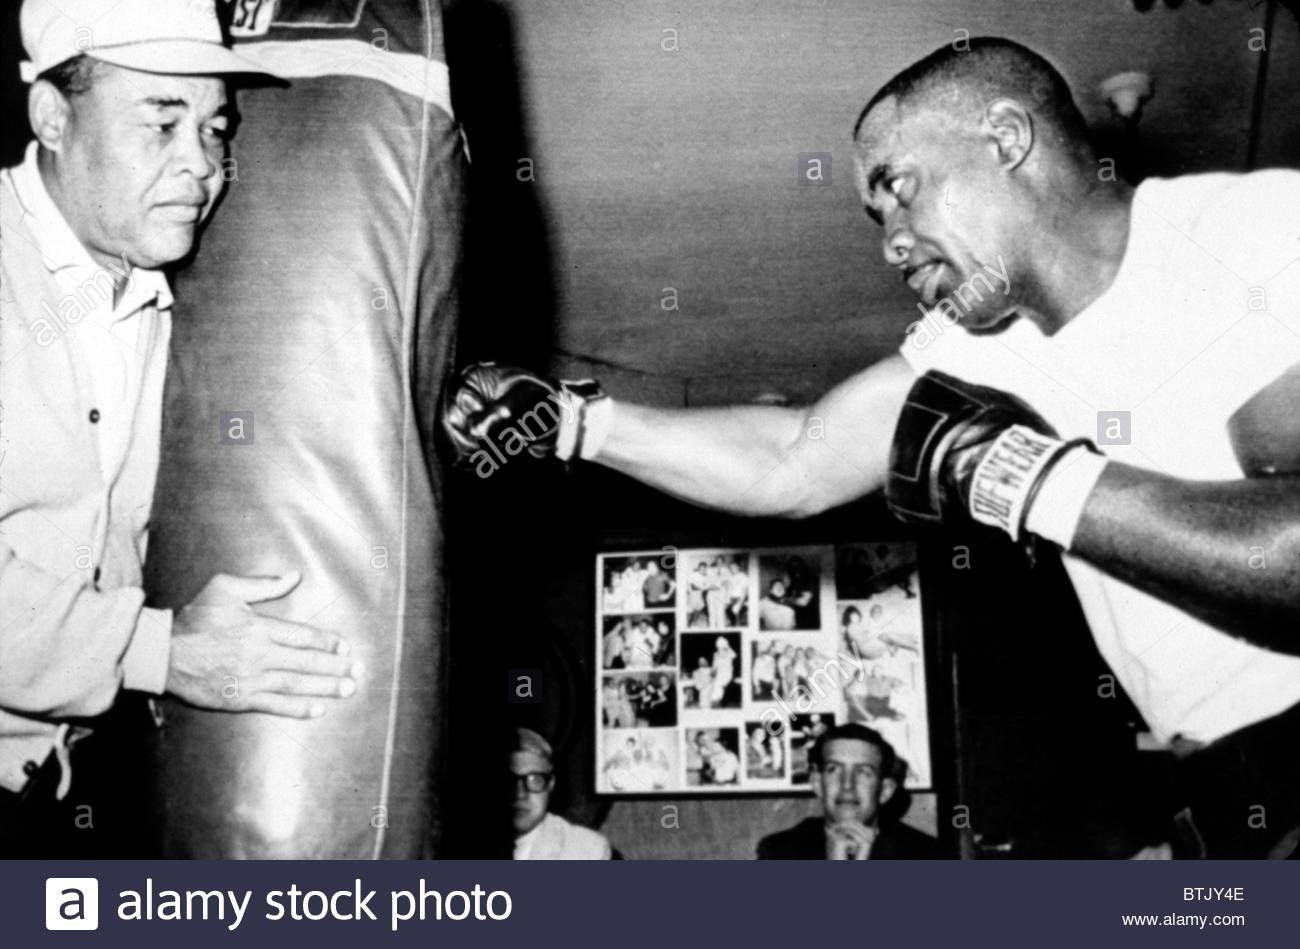 sonny-liston-working-out-on-the-heavy-bag-while-joe-louis-holds-it-BTJY4E.jpg